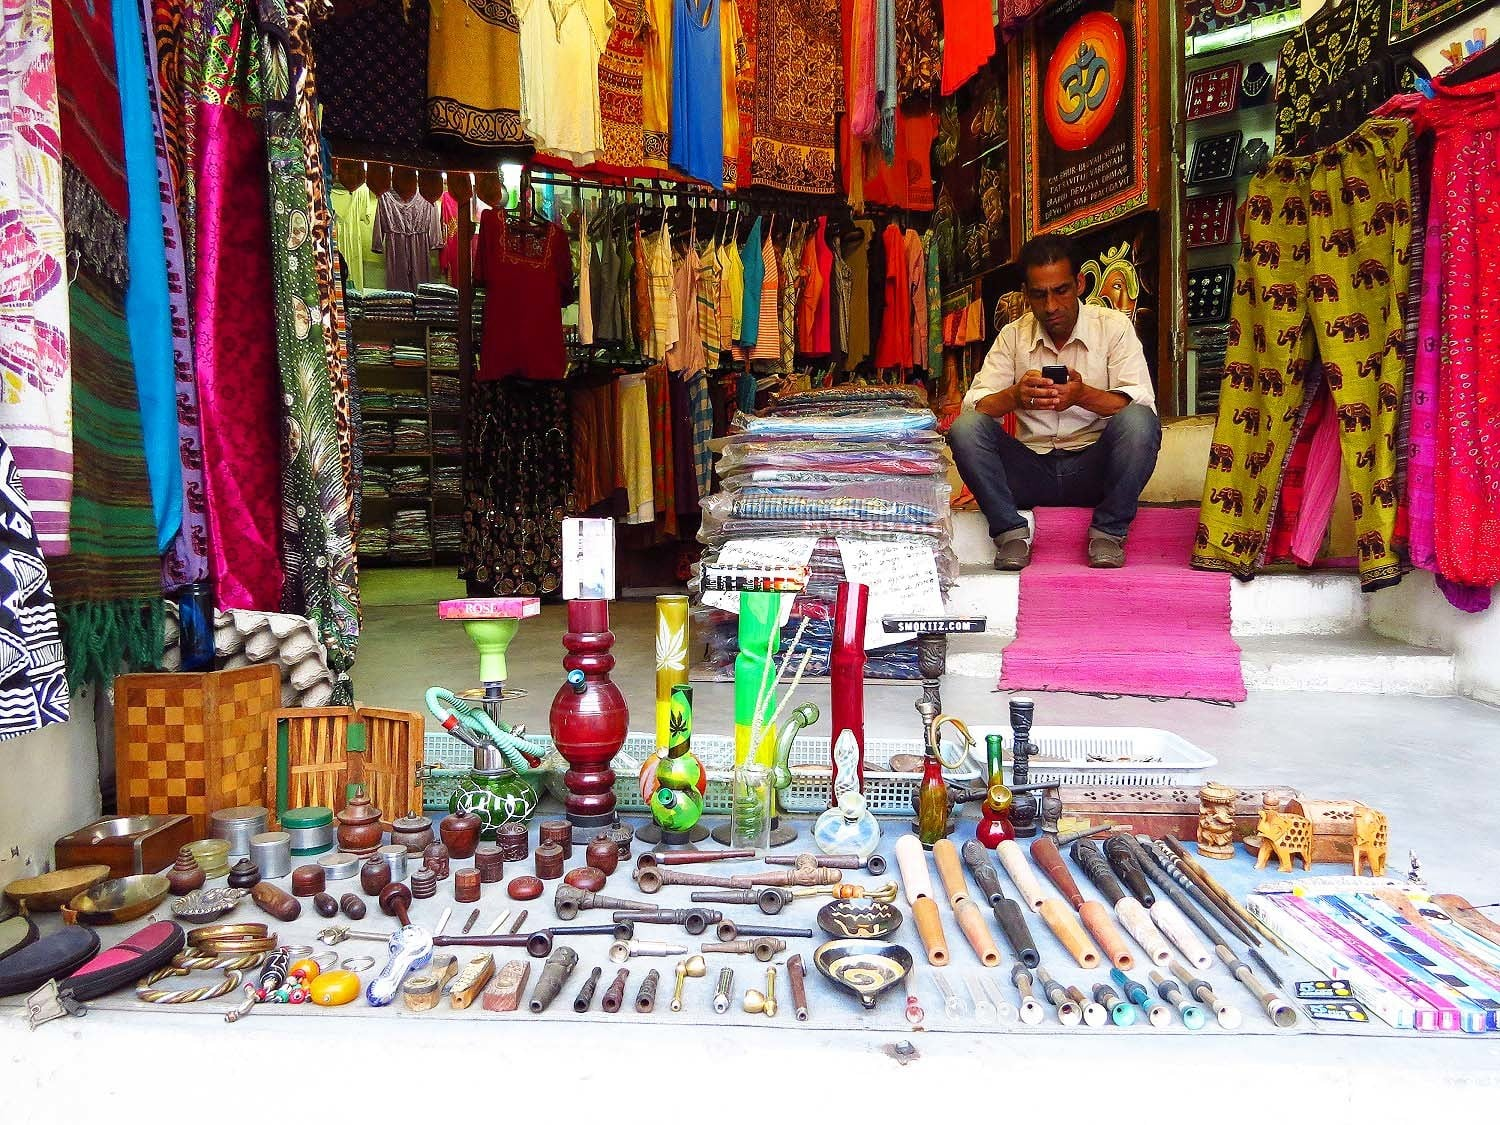 A shop in Old Manali.